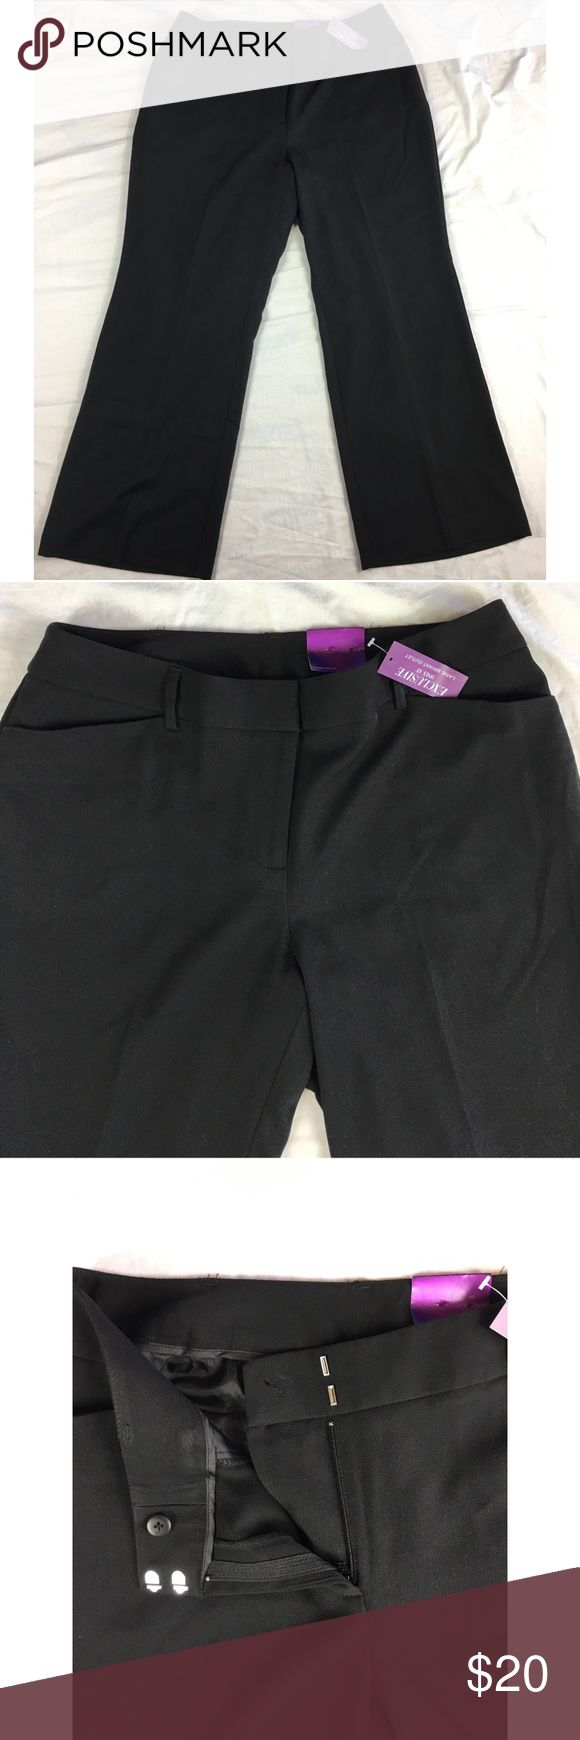 Lane Bryant pants black Houston tailored stretch Lane Bryant pants black Houston tailored stretch Original retail price $49.95 classic relaxed fit through the leg Women's Size:  14P Approx measurement: waist - 34 inches; inseam - 28 1/4 inches; rise - 10 1/2 inches Fabric content: 63% polyester, 33% rayon, 4% spandex Machine washable New with tags - see pictures Lane Bryant Pants Trousers